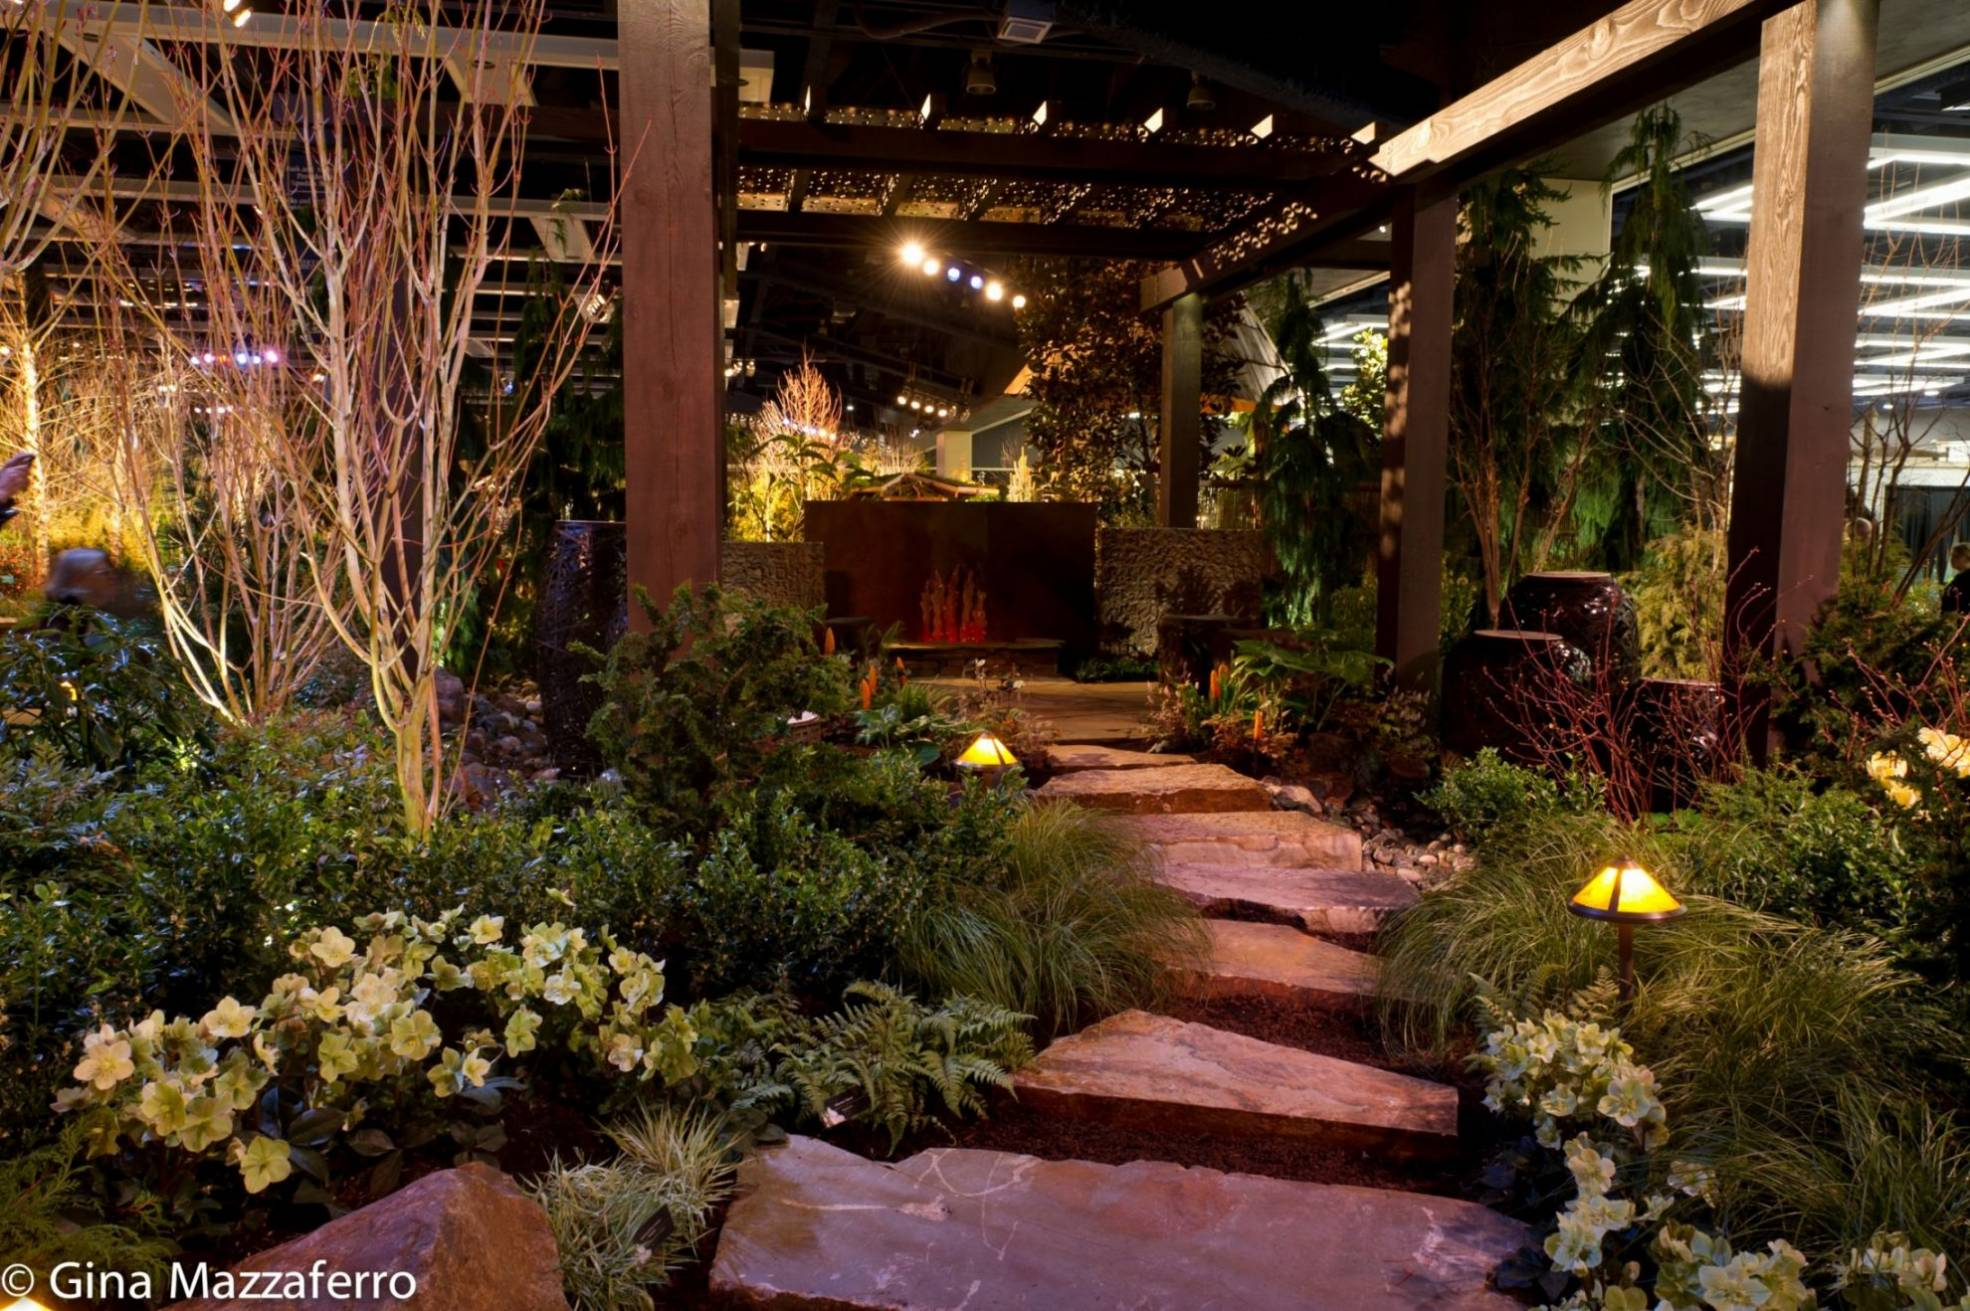 The 2013 Northwest Flower & Garden Show | Sublime Garden Design ...